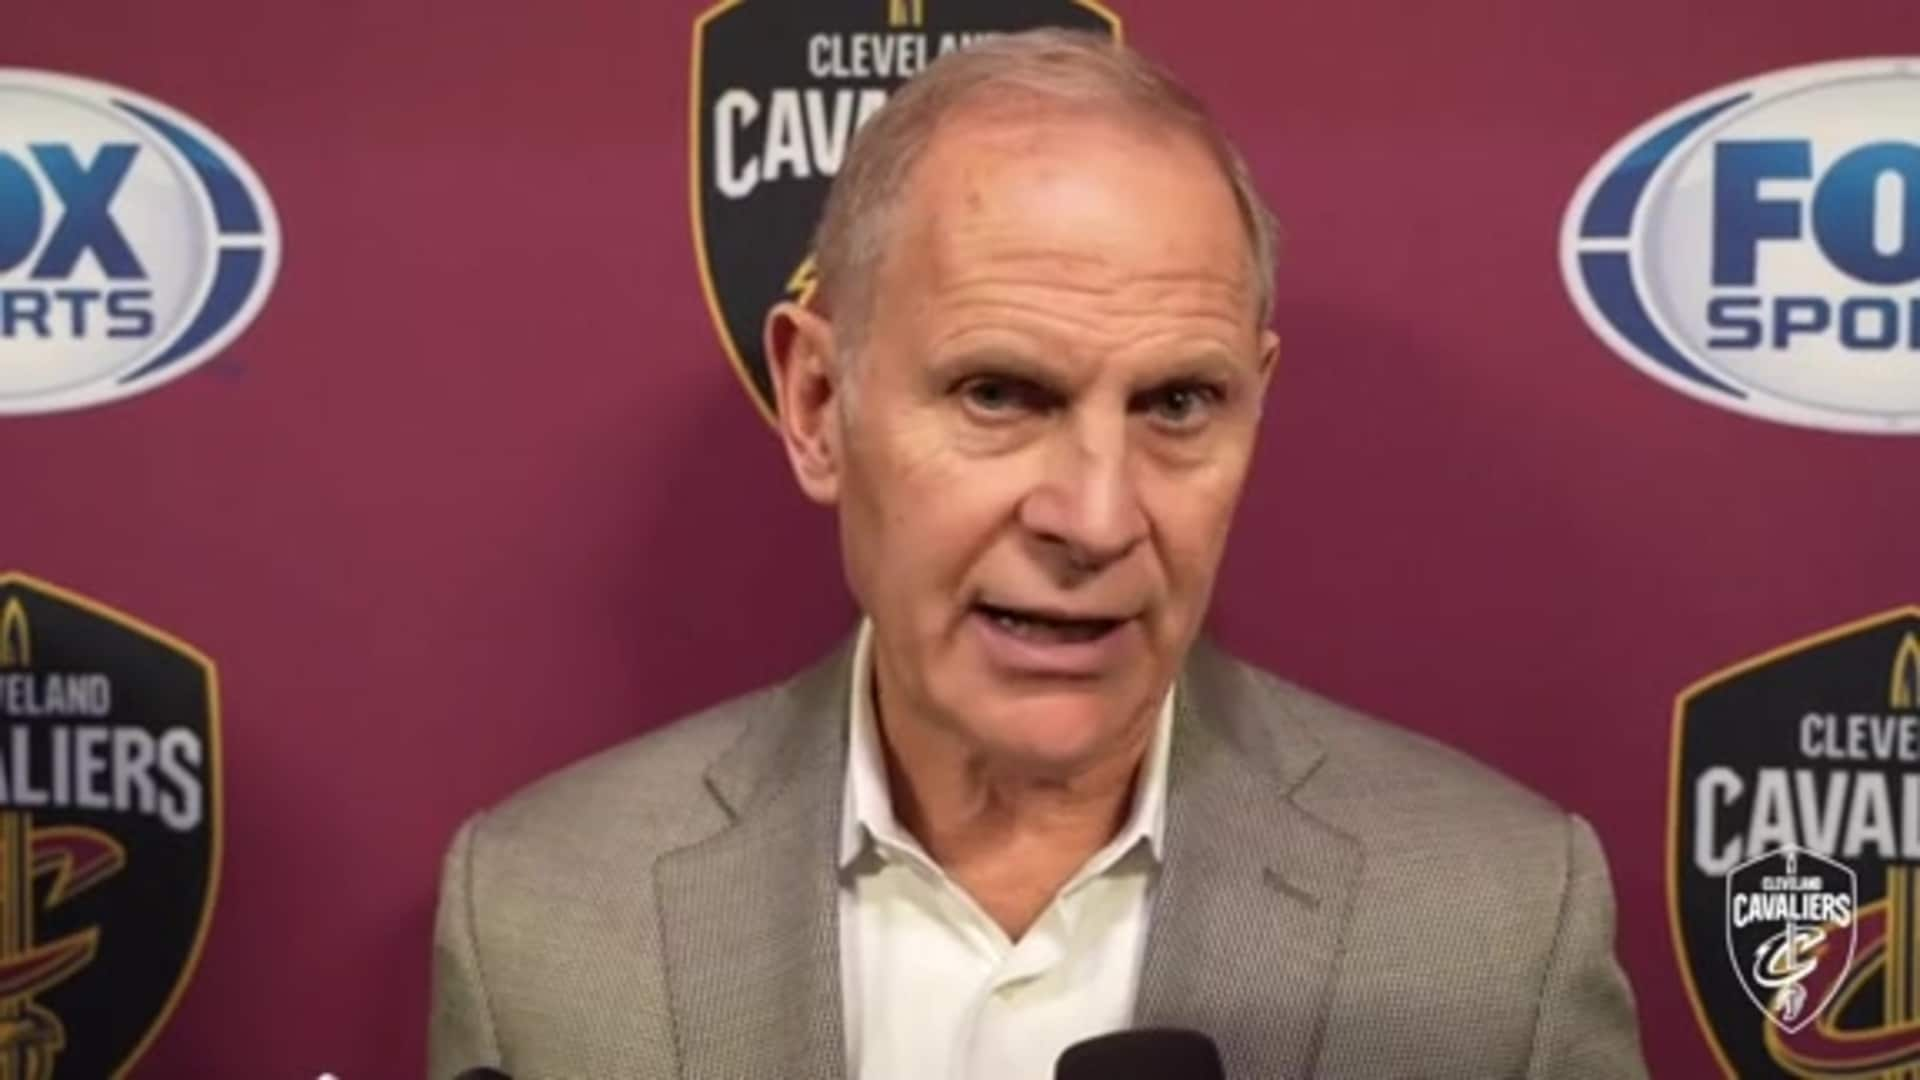 Cavs at Pacers Postgame: Coach Beilein